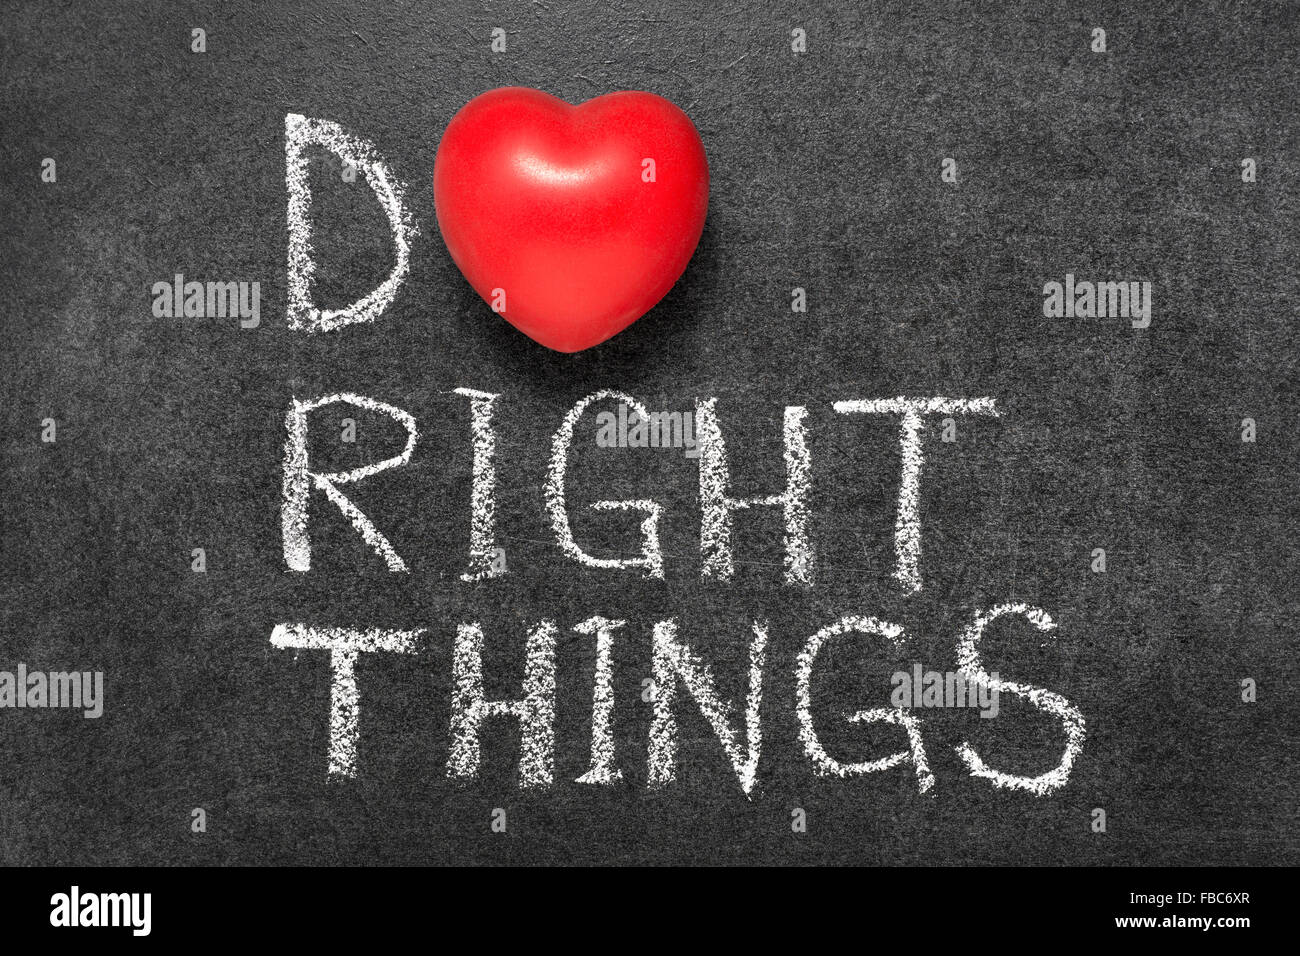 do right things phrase handwritten on blackboard with heart symbol instead O - Stock Image